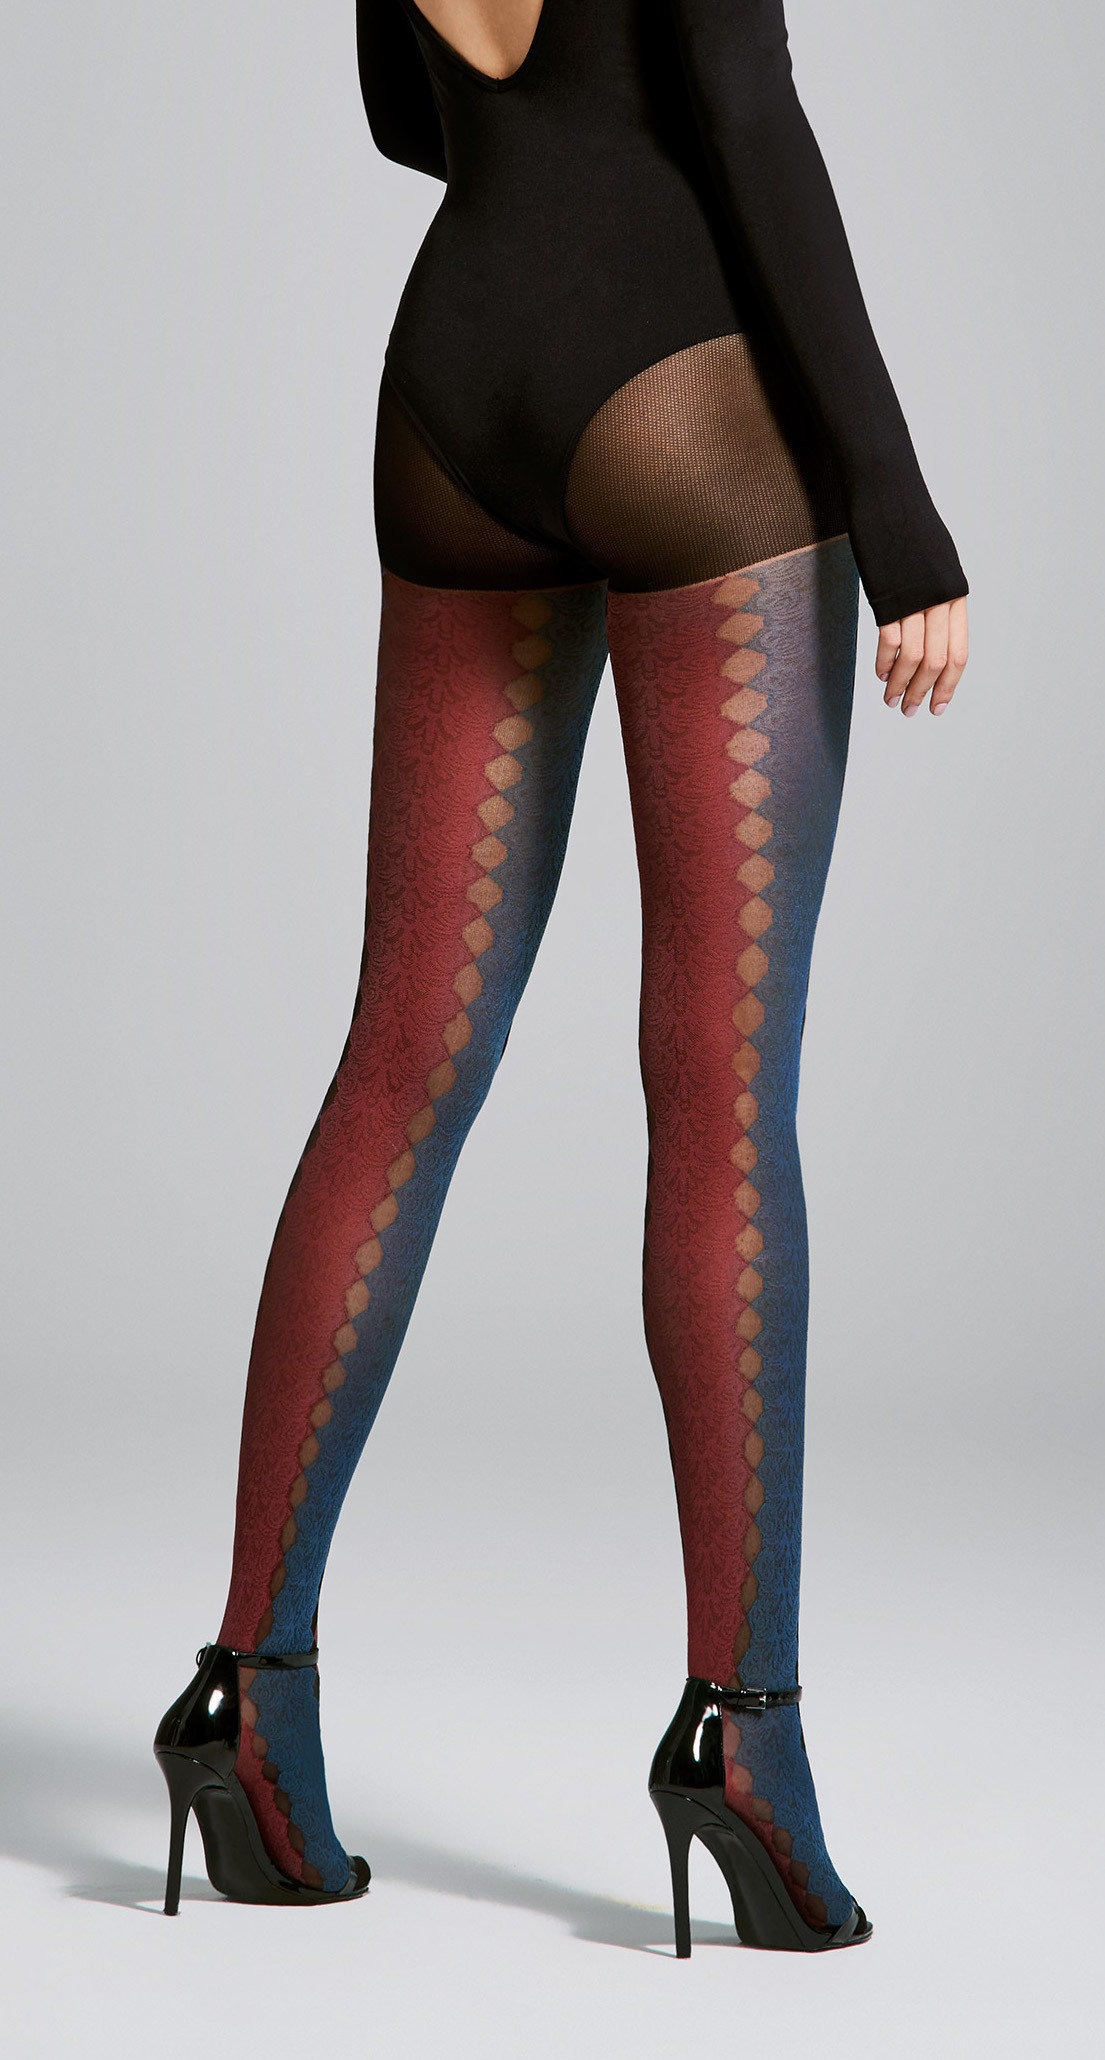 Fiore: Sexy Sunset Sunrise Semi-Opaque Tights FIO_JOURNEY_N